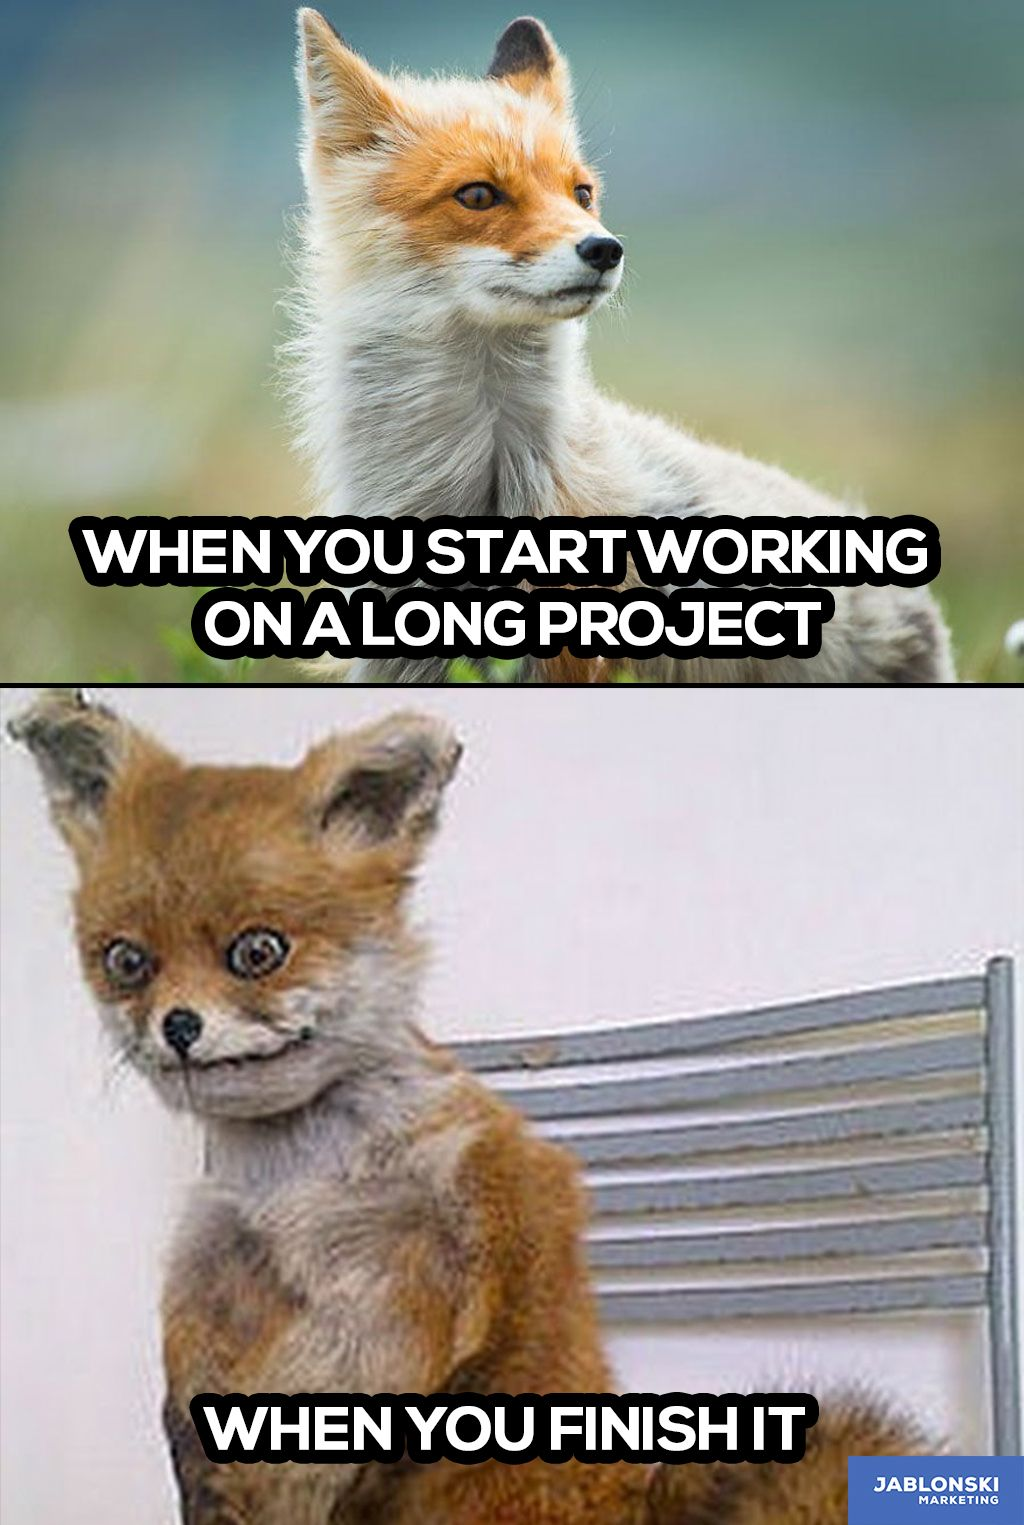 When you start working on a long project, when you finish